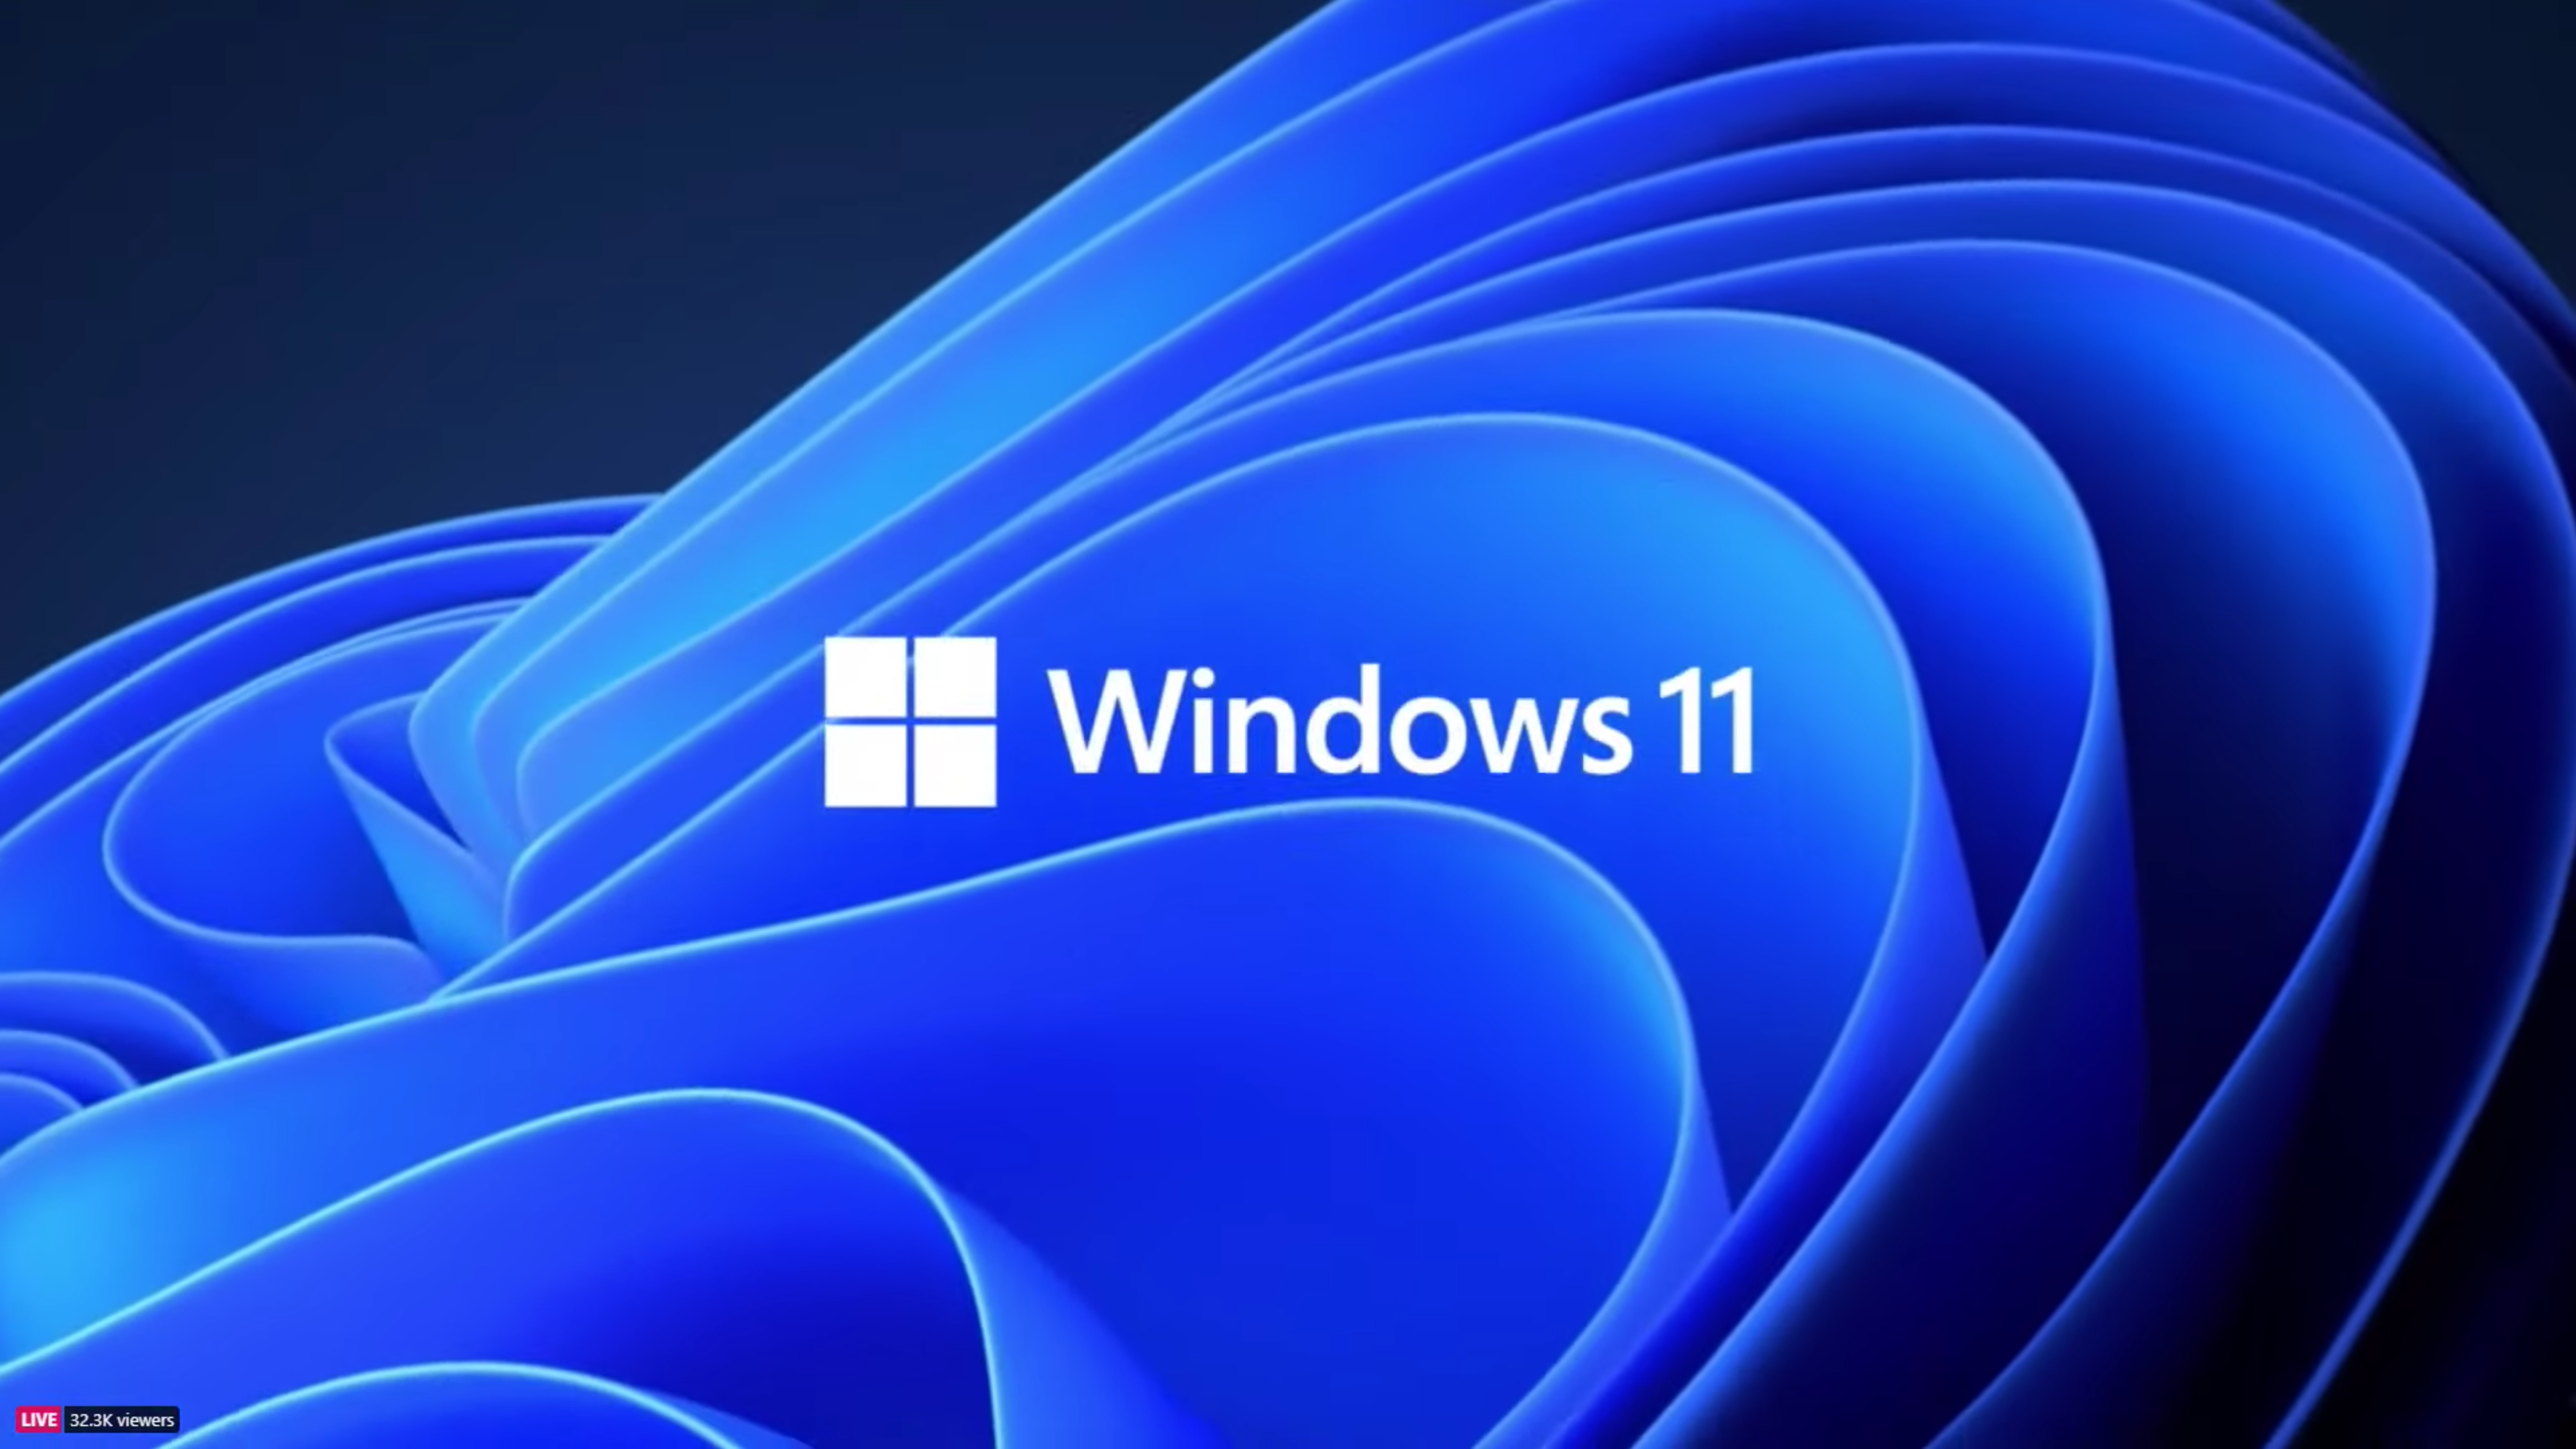 Windows 11 download: The upgrade will be free, and here's how to get it - CNET